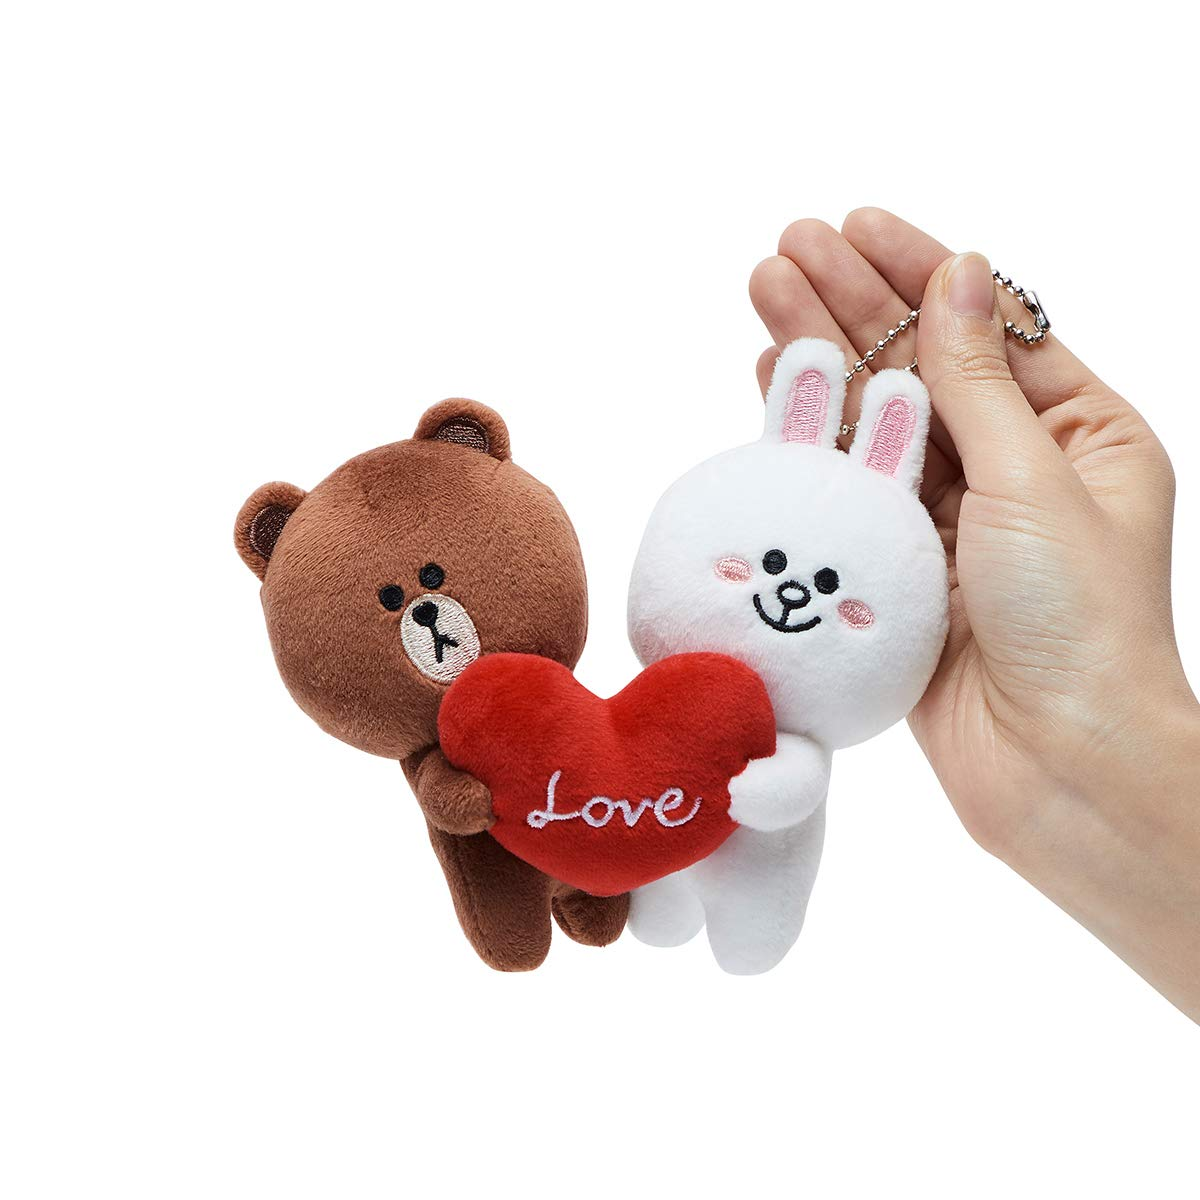 LINE FRIENDS Love Bag Charm - BF Character Keychain Décor 15CM, Brown/White by LINE FRIENDS (Image #2)